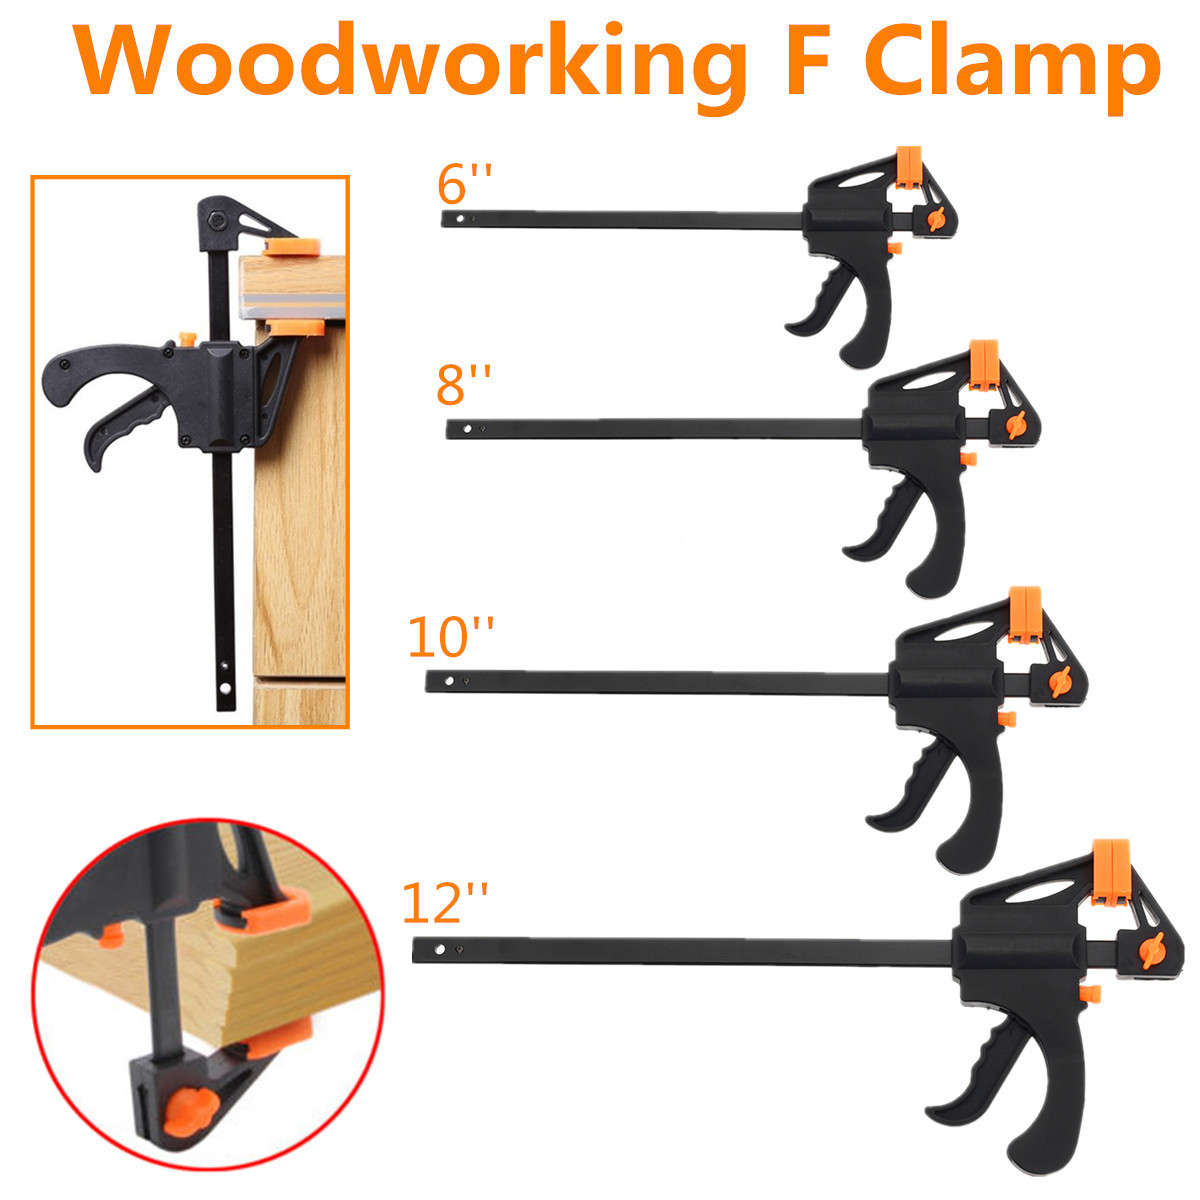 Wood Working Bar F Clamp 6/8/10/12 Inch Grip Ratchet Release Squeeze Hand Tool More-nimble Version Hardened Steel Bar no RustWood Working Bar F Clamp 6/8/10/12 Inch Grip Ratchet Release Squeeze Hand Tool More-nimble Version Hardened Steel Bar no Rust